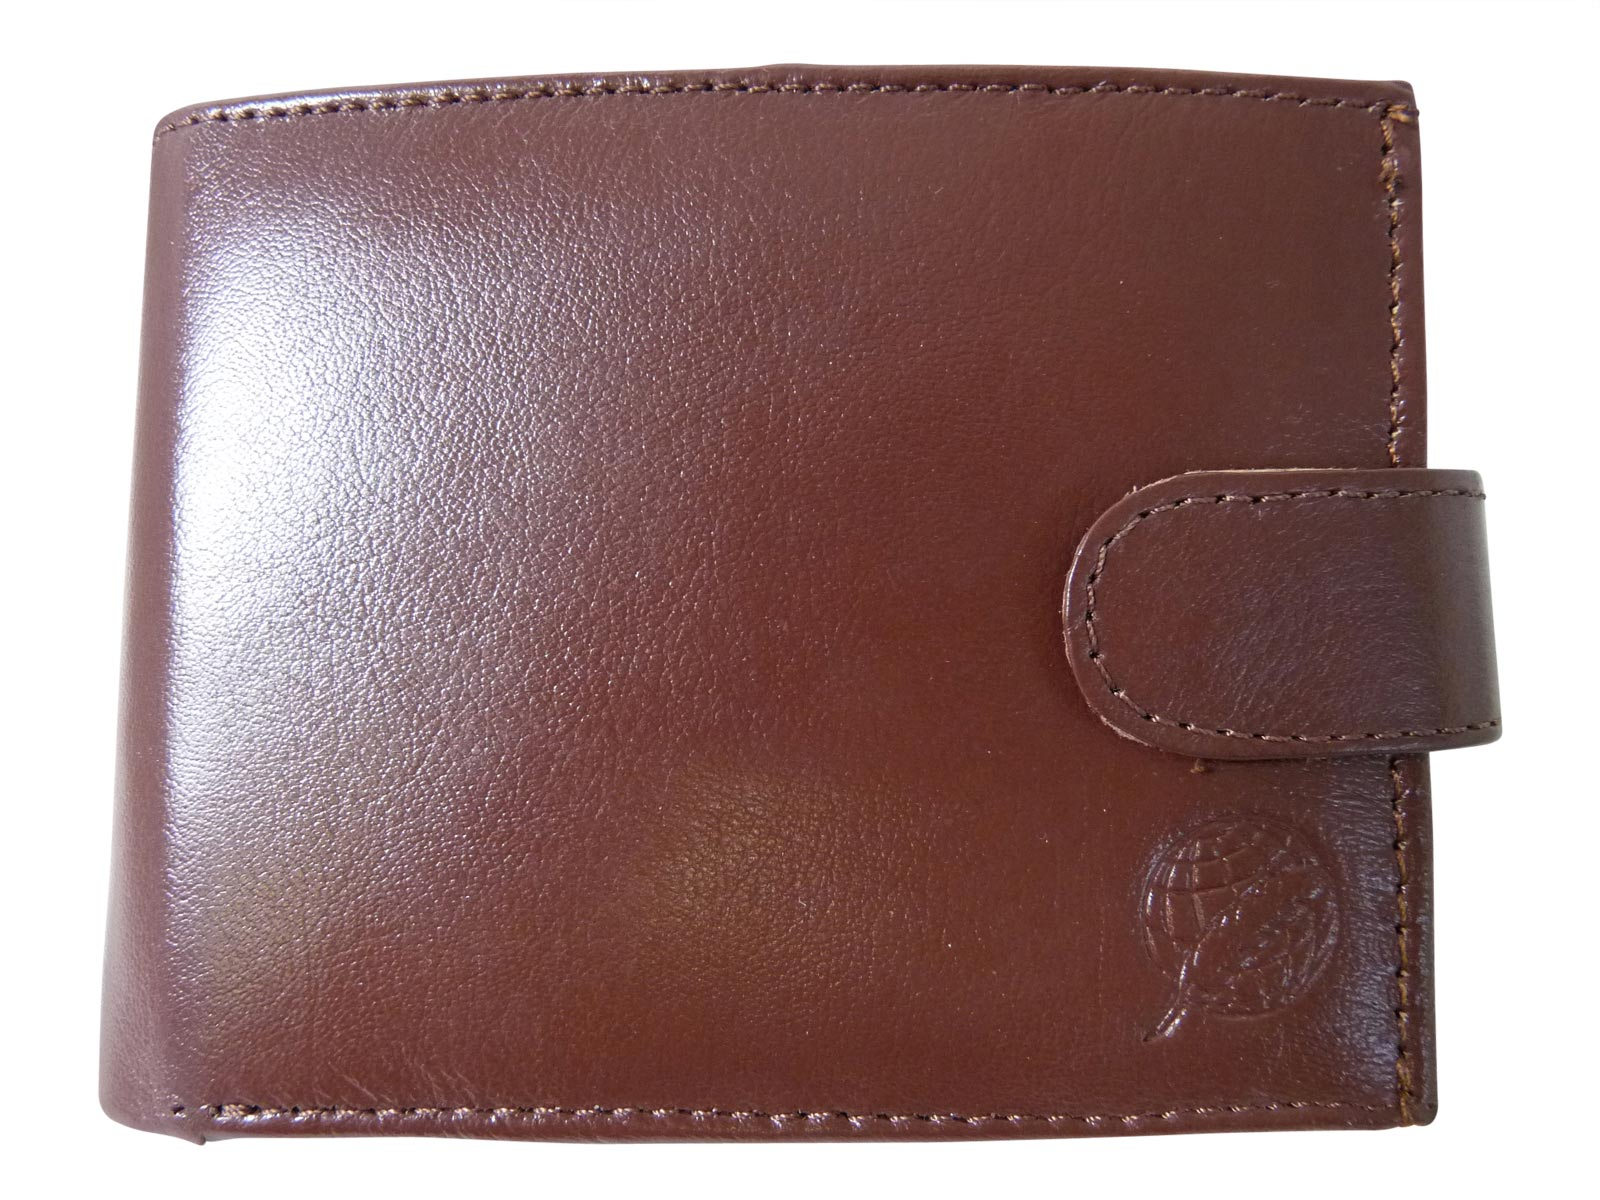 Black Leather Cards Notes and Coins Wallet RL374LB front